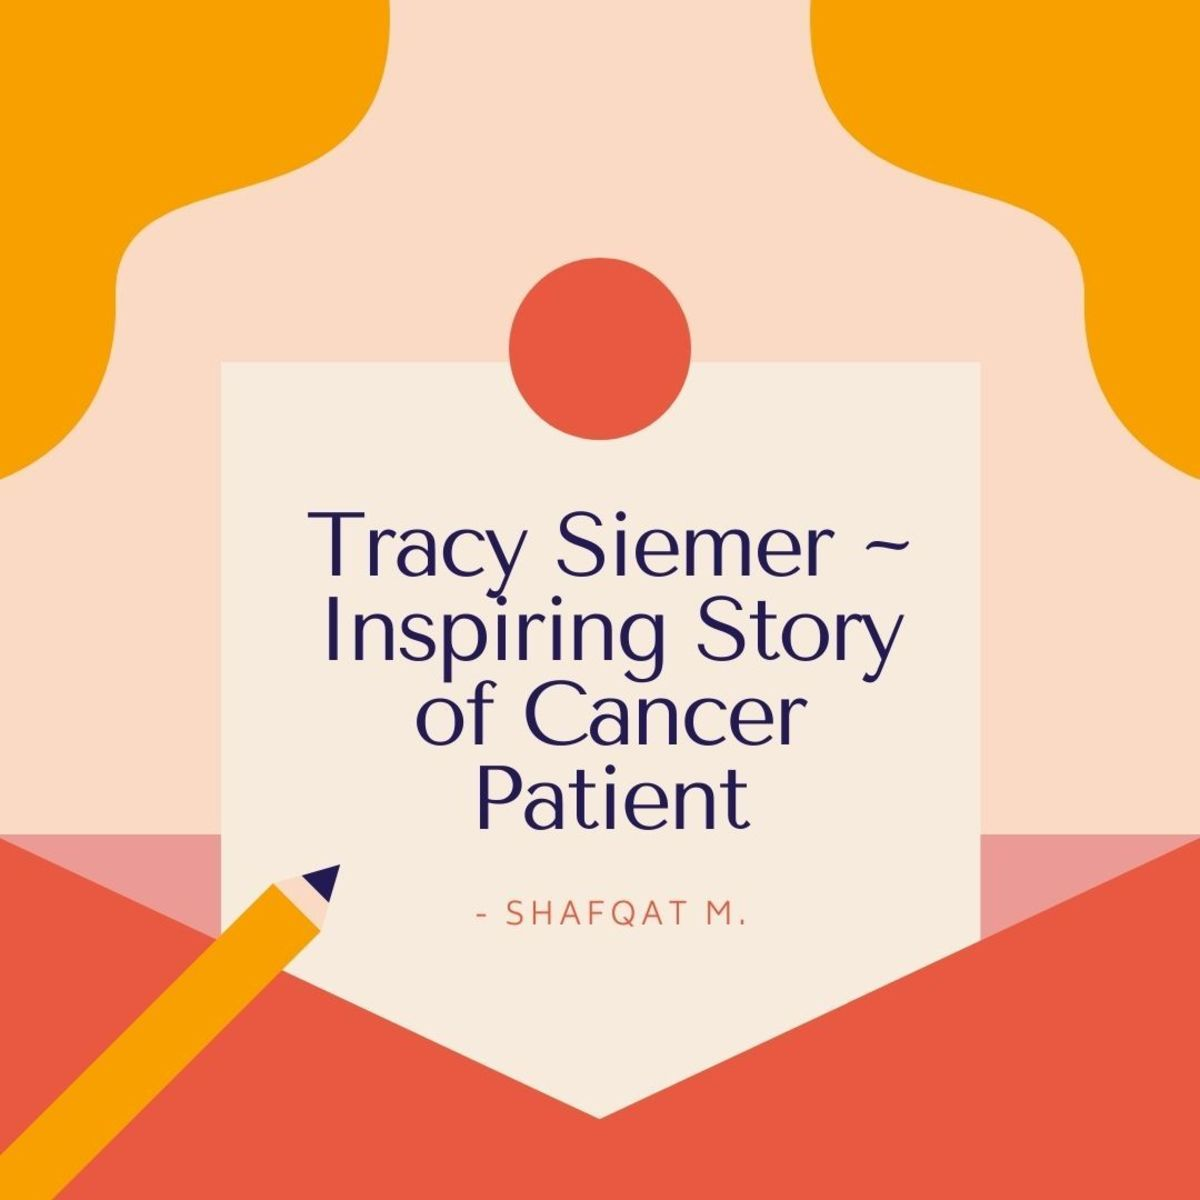 Tracy Siemer ~ Inspiring Story of Cancer Patient